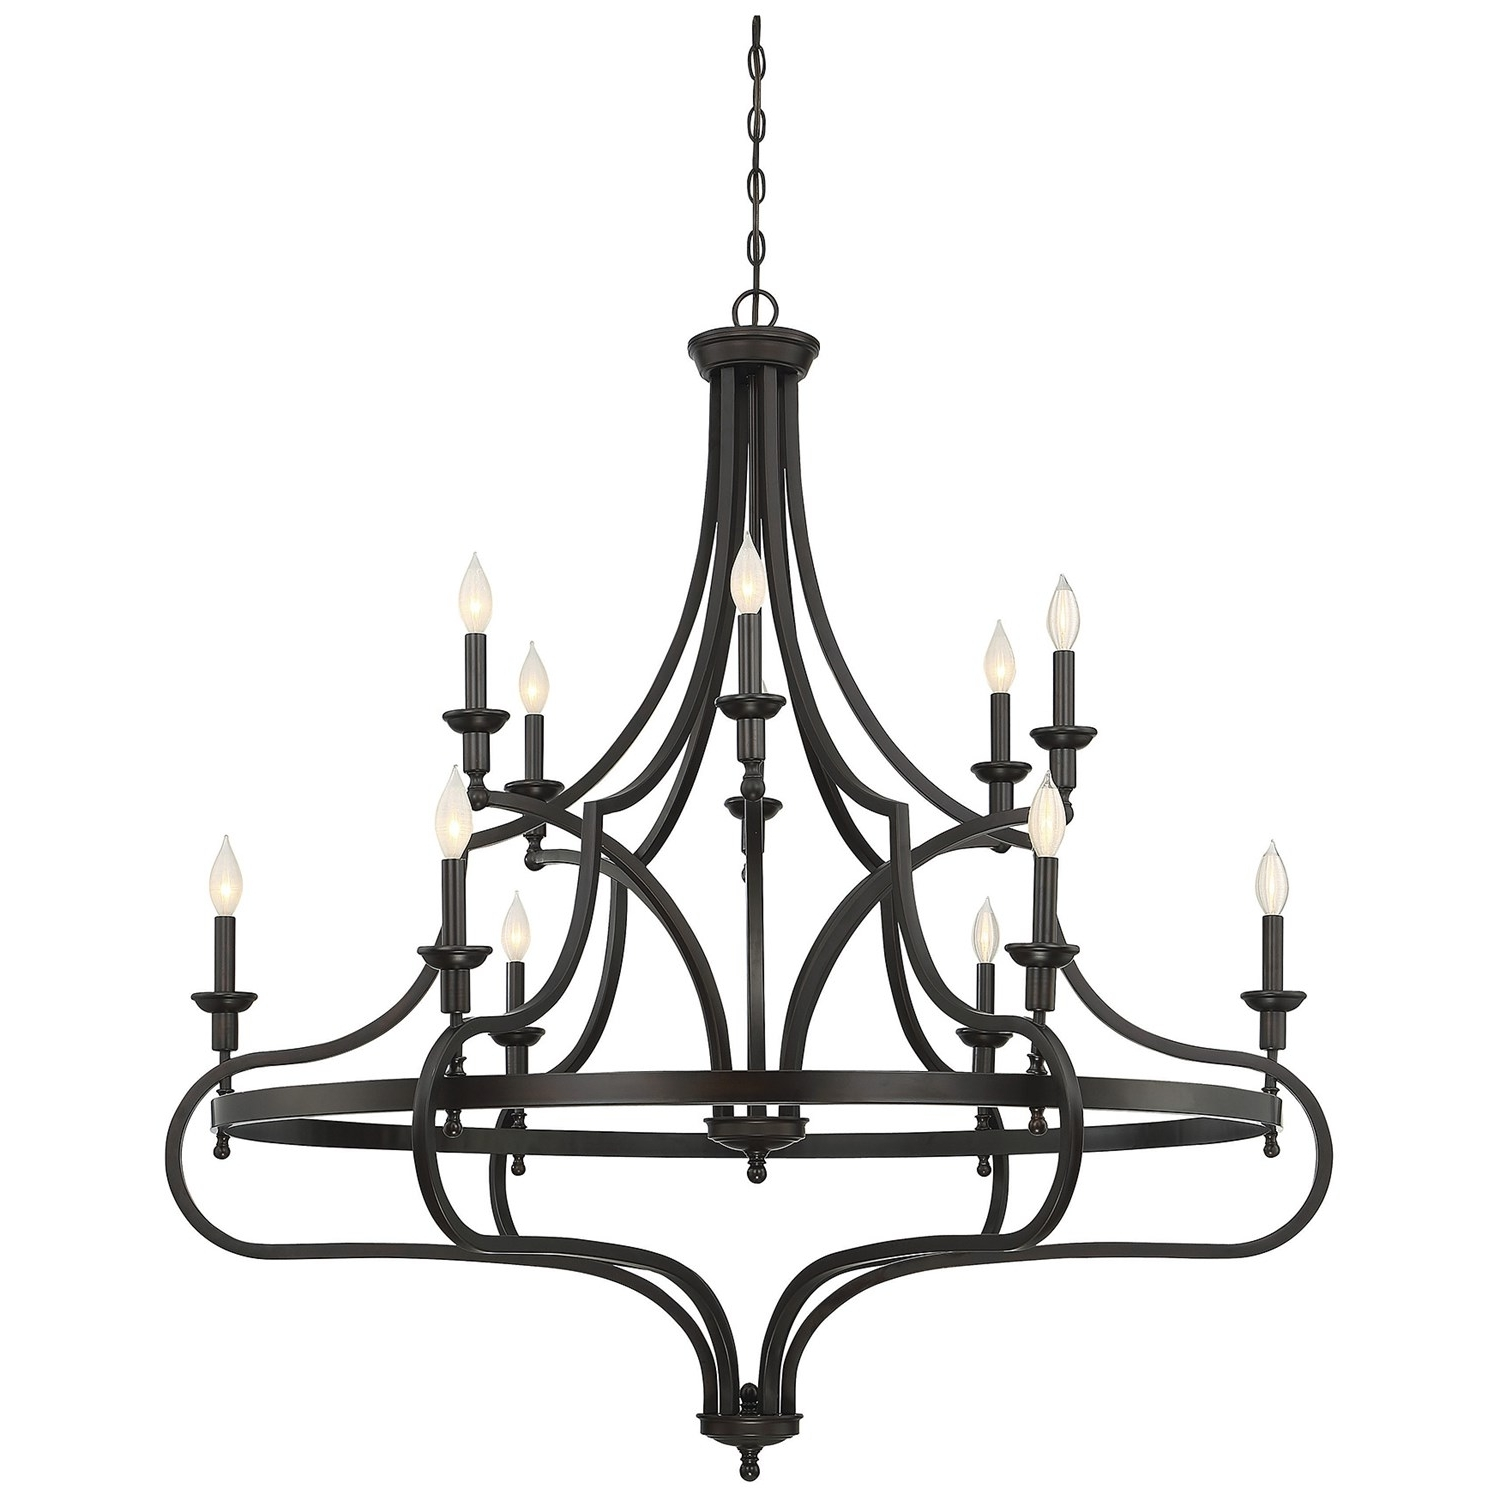 Well Known Savoy House Chandeliers With Chandeliers Design : Fabulous Carriage House Light Fixtures Savoy (View 7 of 20)